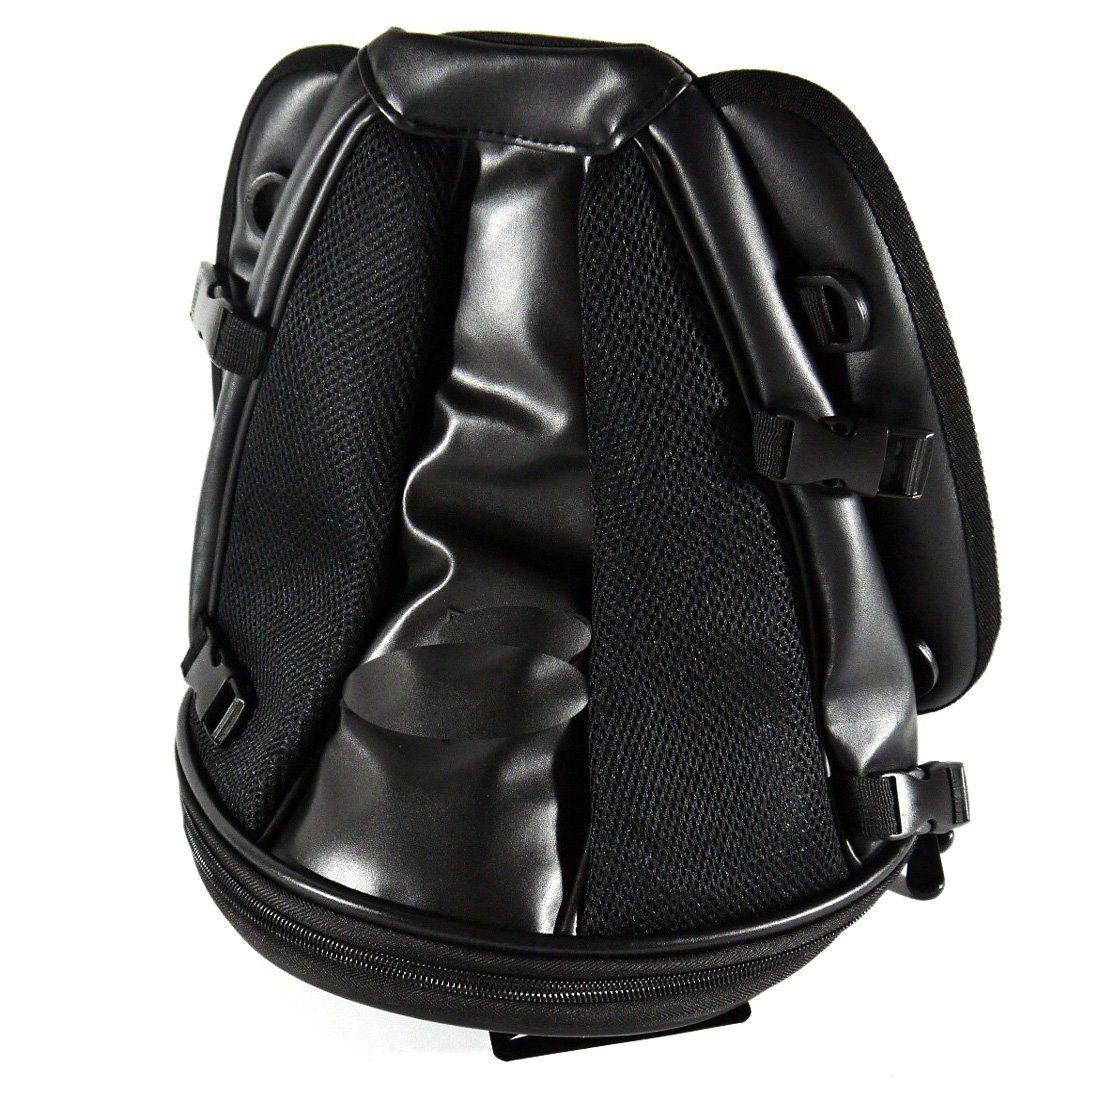 Motorcycle Accessories Motorcycle Bike Sports Waterproof Back Seat Carry Bag Luggage Tail Bag Saddlebag Auto Parts & Accessories